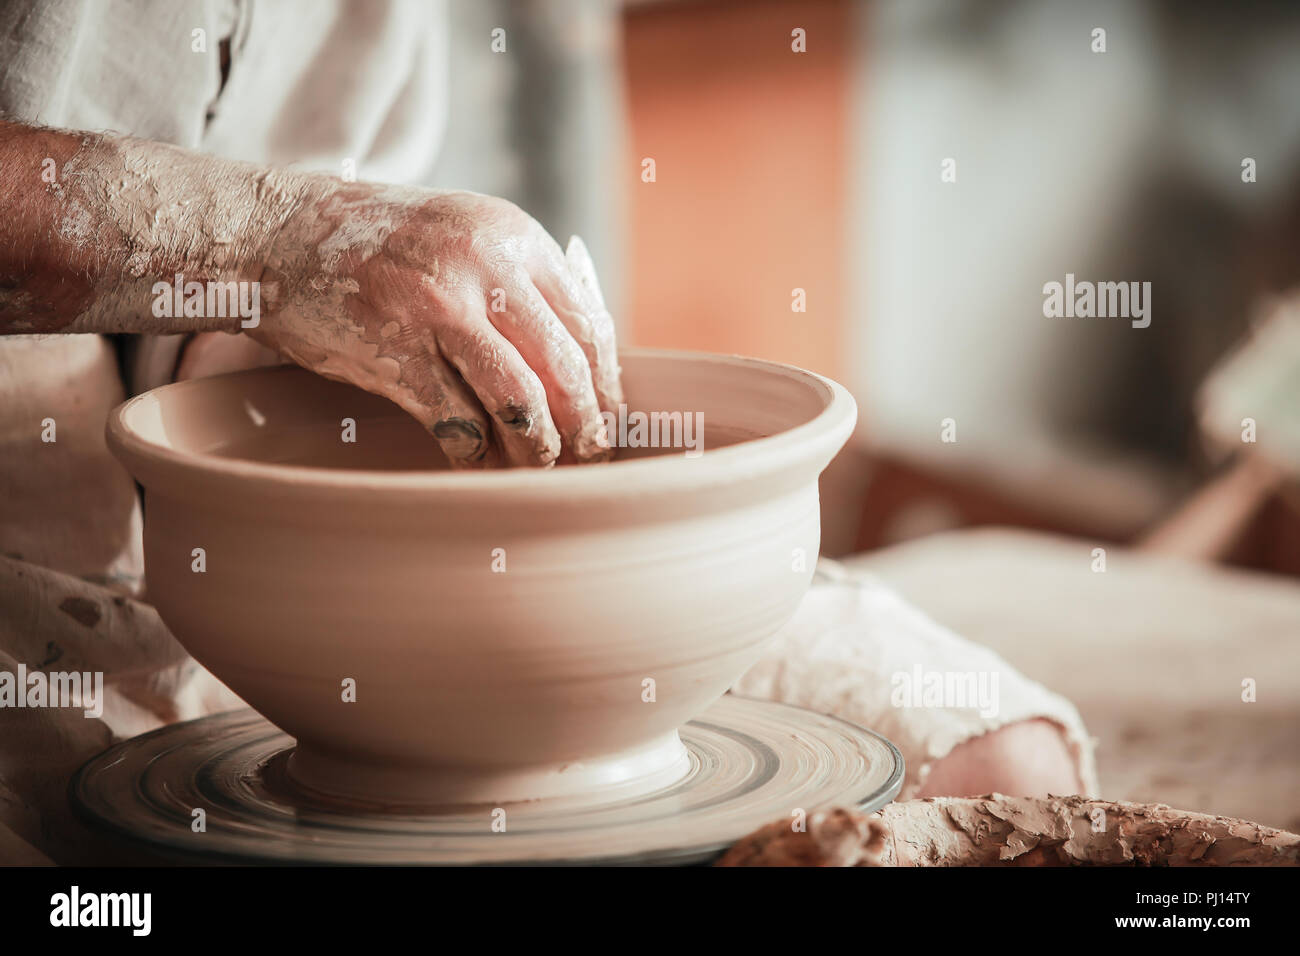 handicraft production of clay products - Stock Image